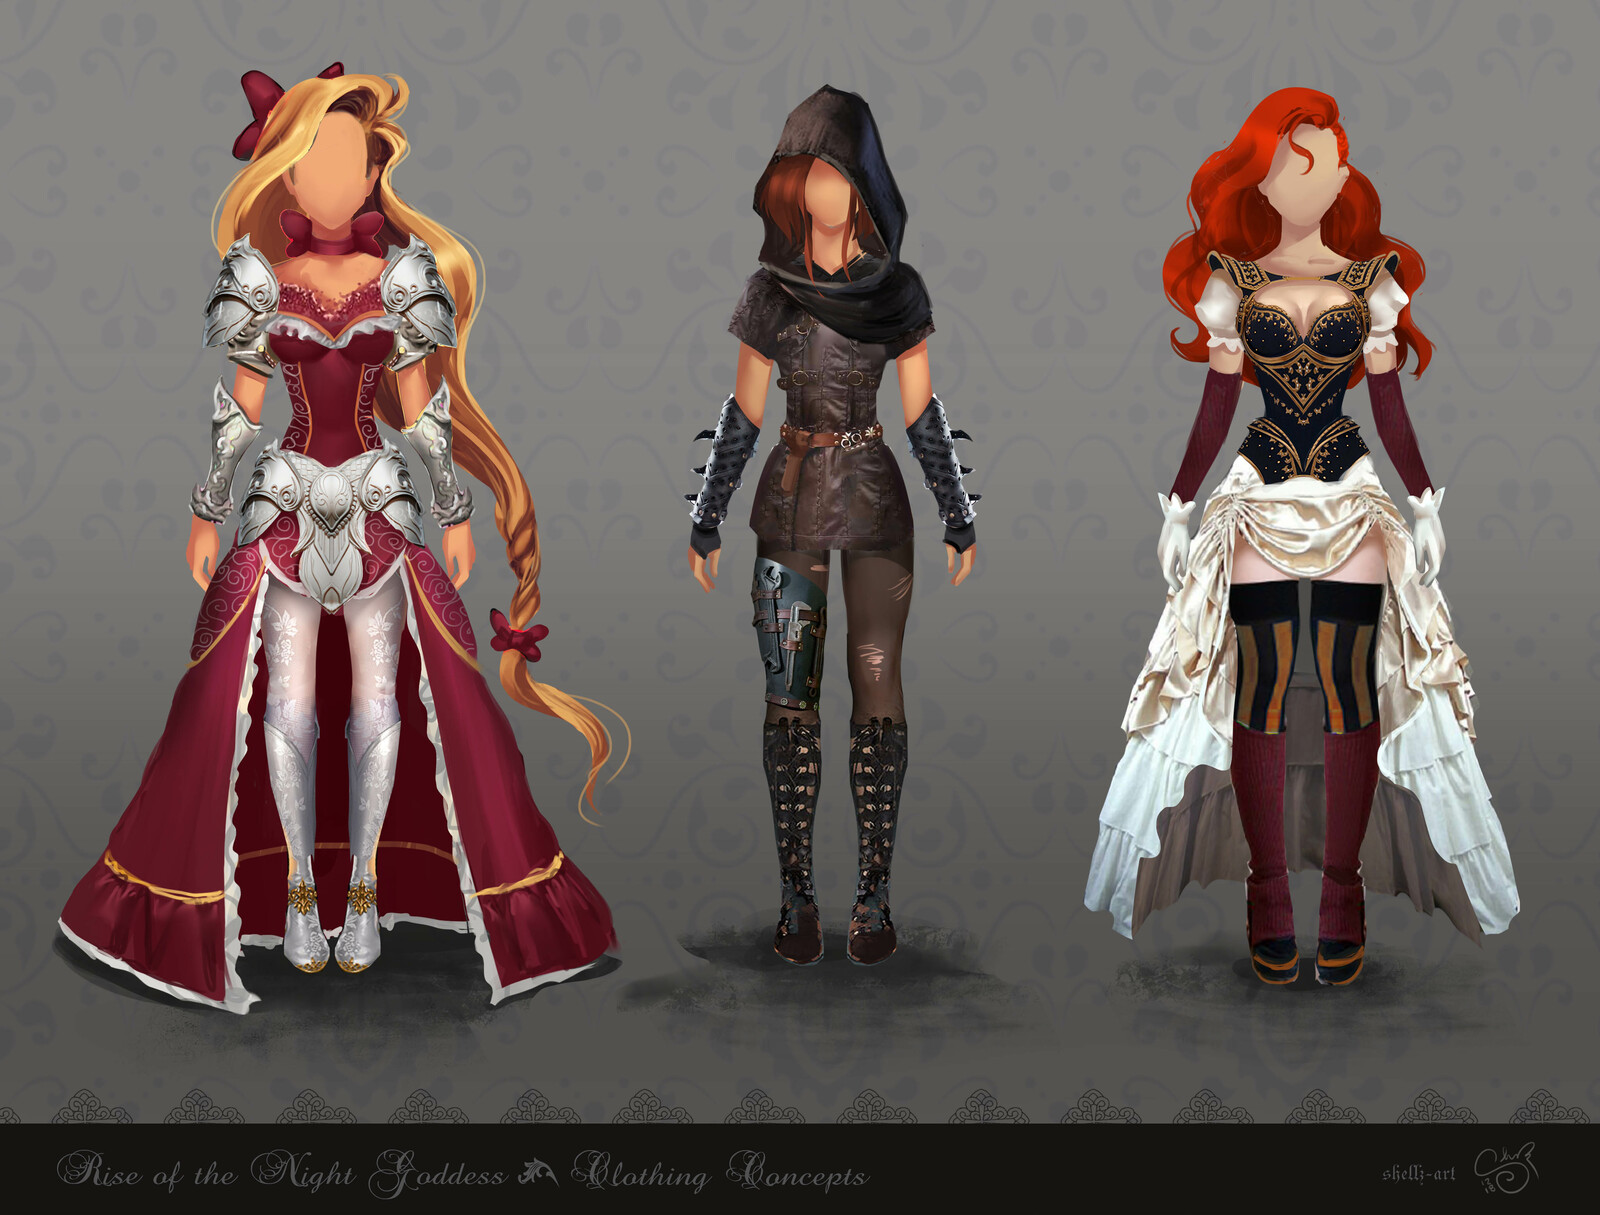 Rise of the Night Goddess - The Aguane Clothing Concepts